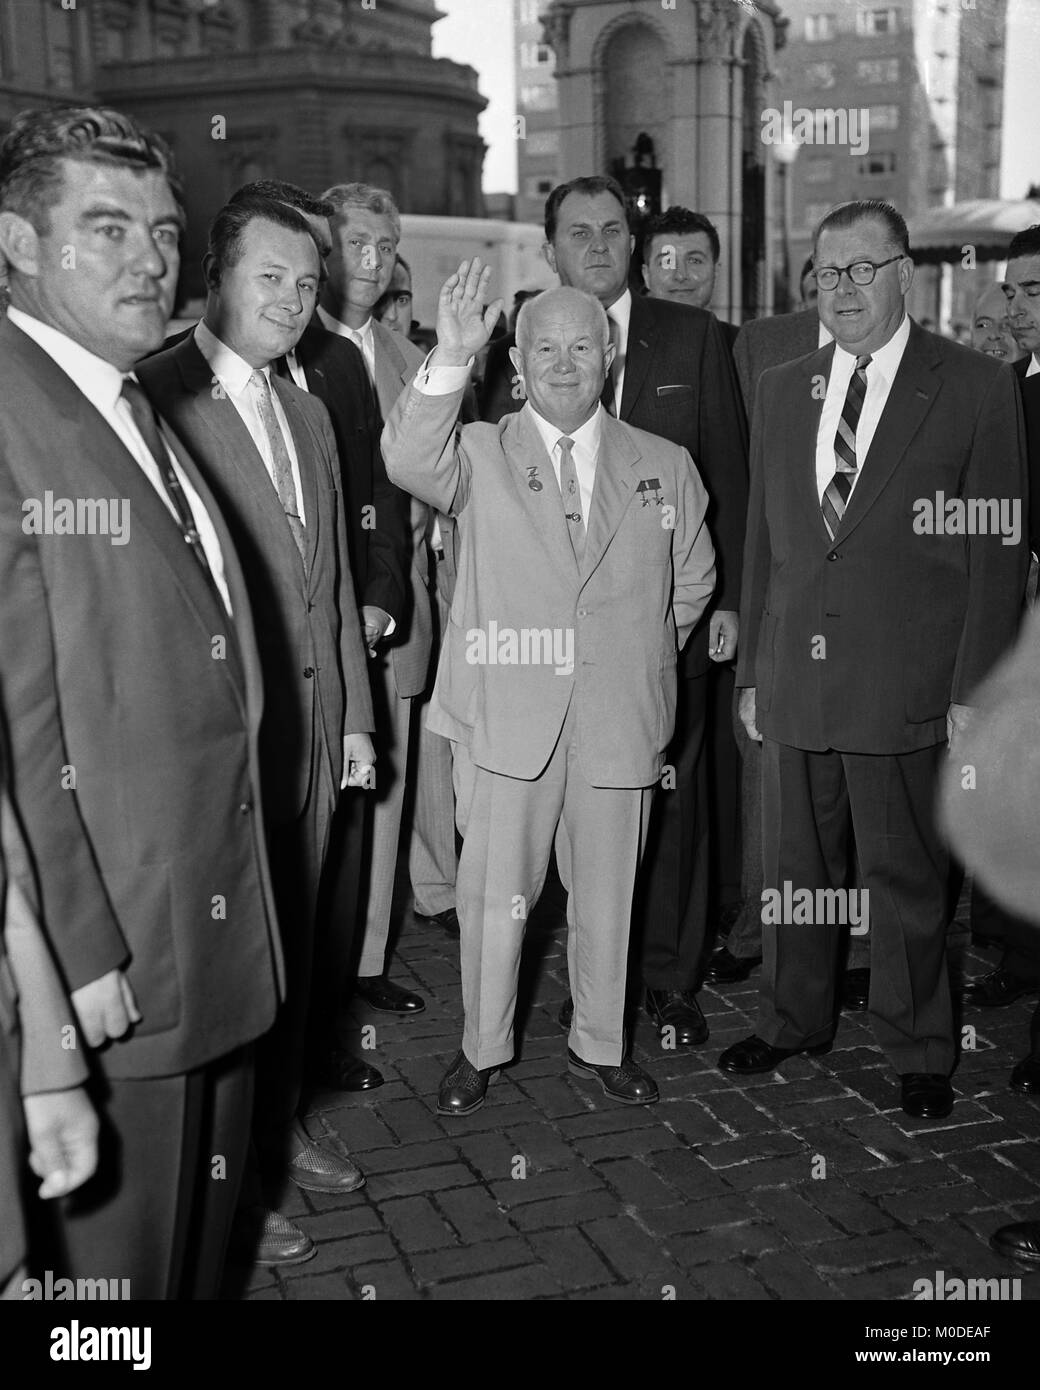 Soviet politician Nikita Khrushchev, standing next to Los Angeles Mayor Norris Poulson, on tour of the USA. Los - Stock Image